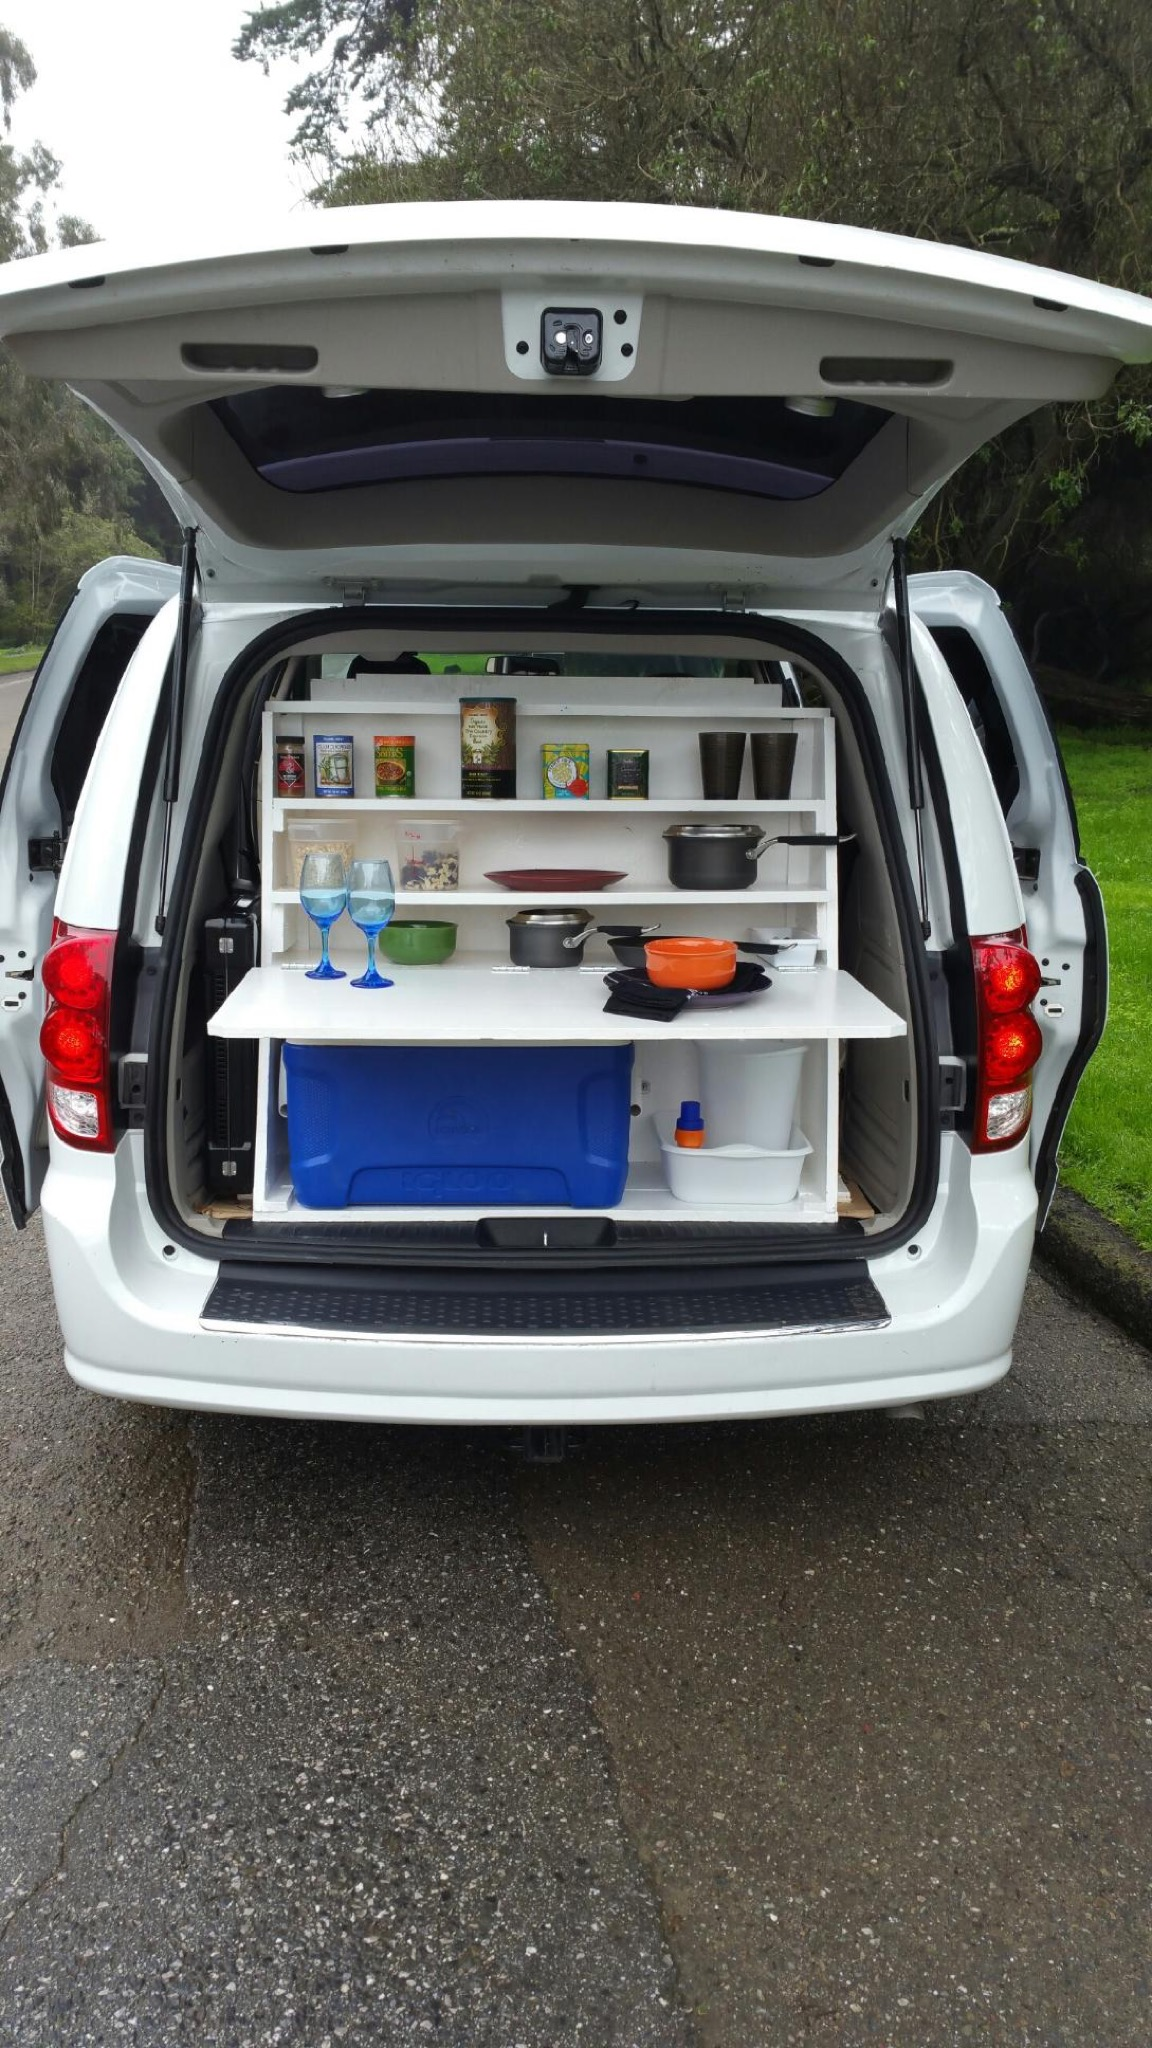 Rent this van to live at Google and 'eat Google food' for $30 a day